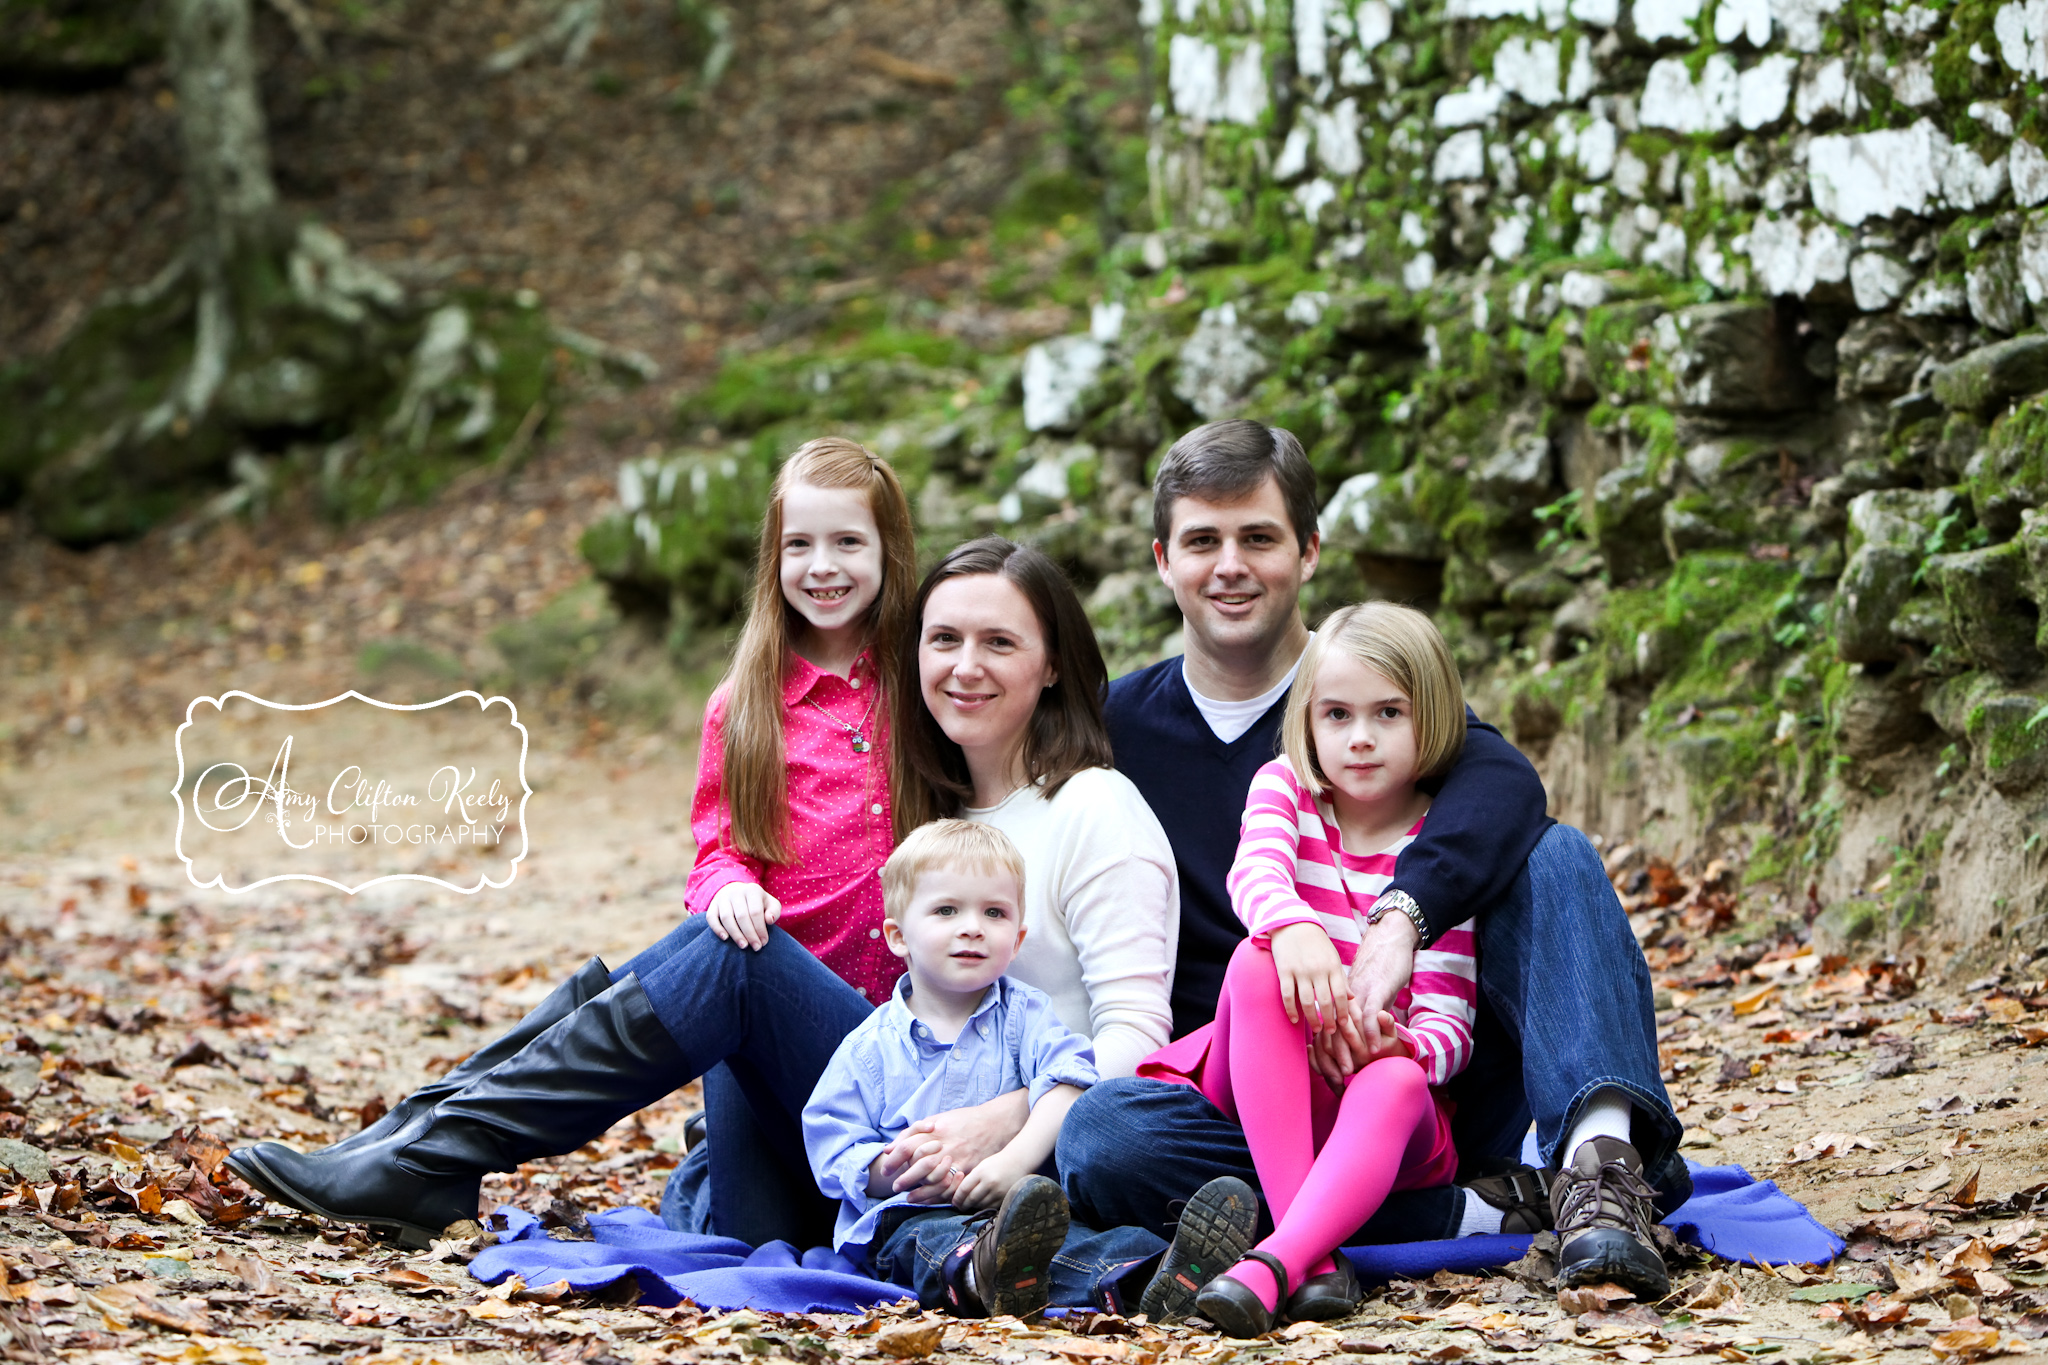 Poinsett Bridge Greenville SC Family Portraits Amy Clifton Keely Photography 03